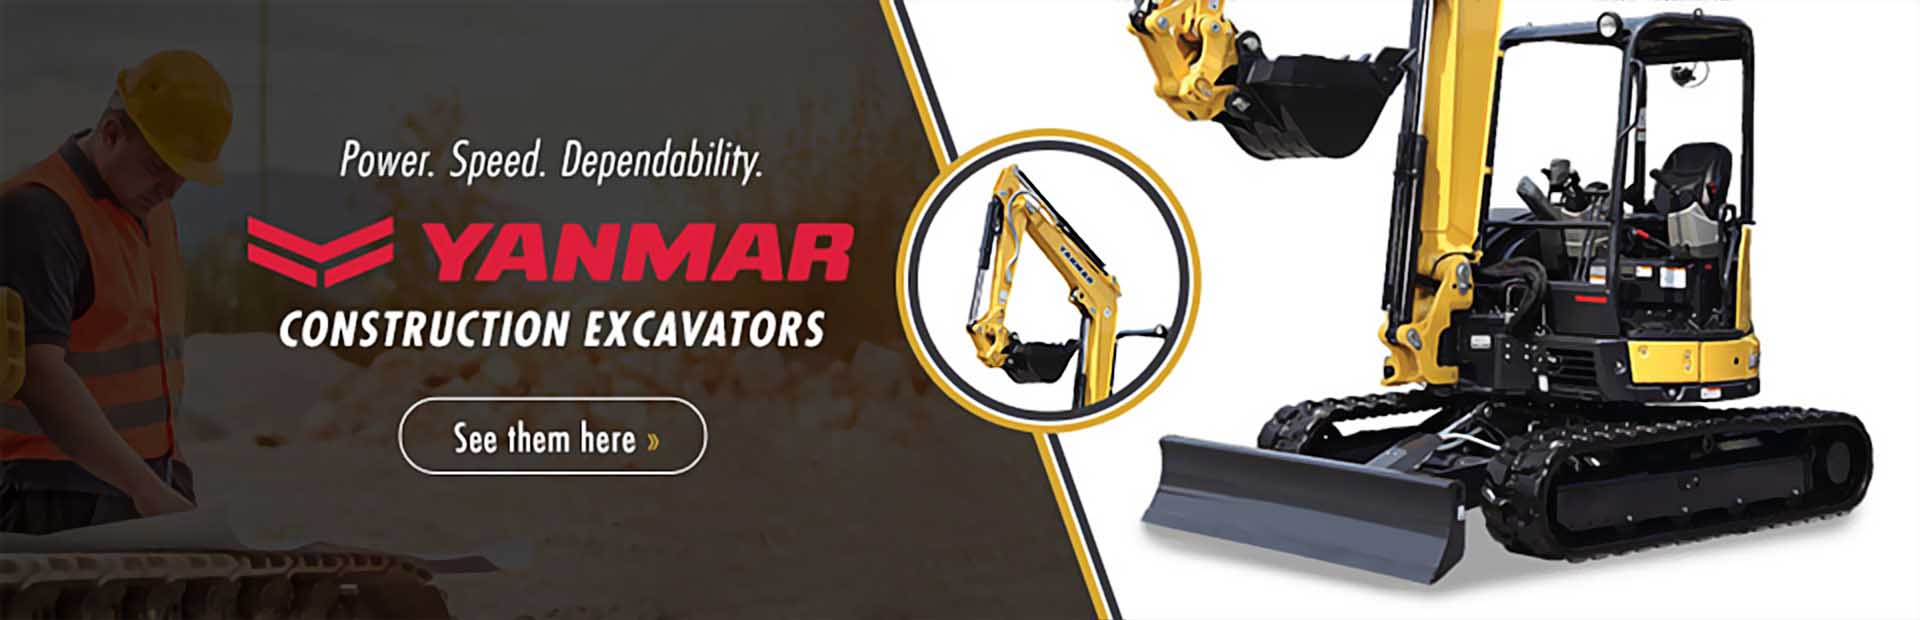 Yanmar Construction Excavators: Click here to view the models.